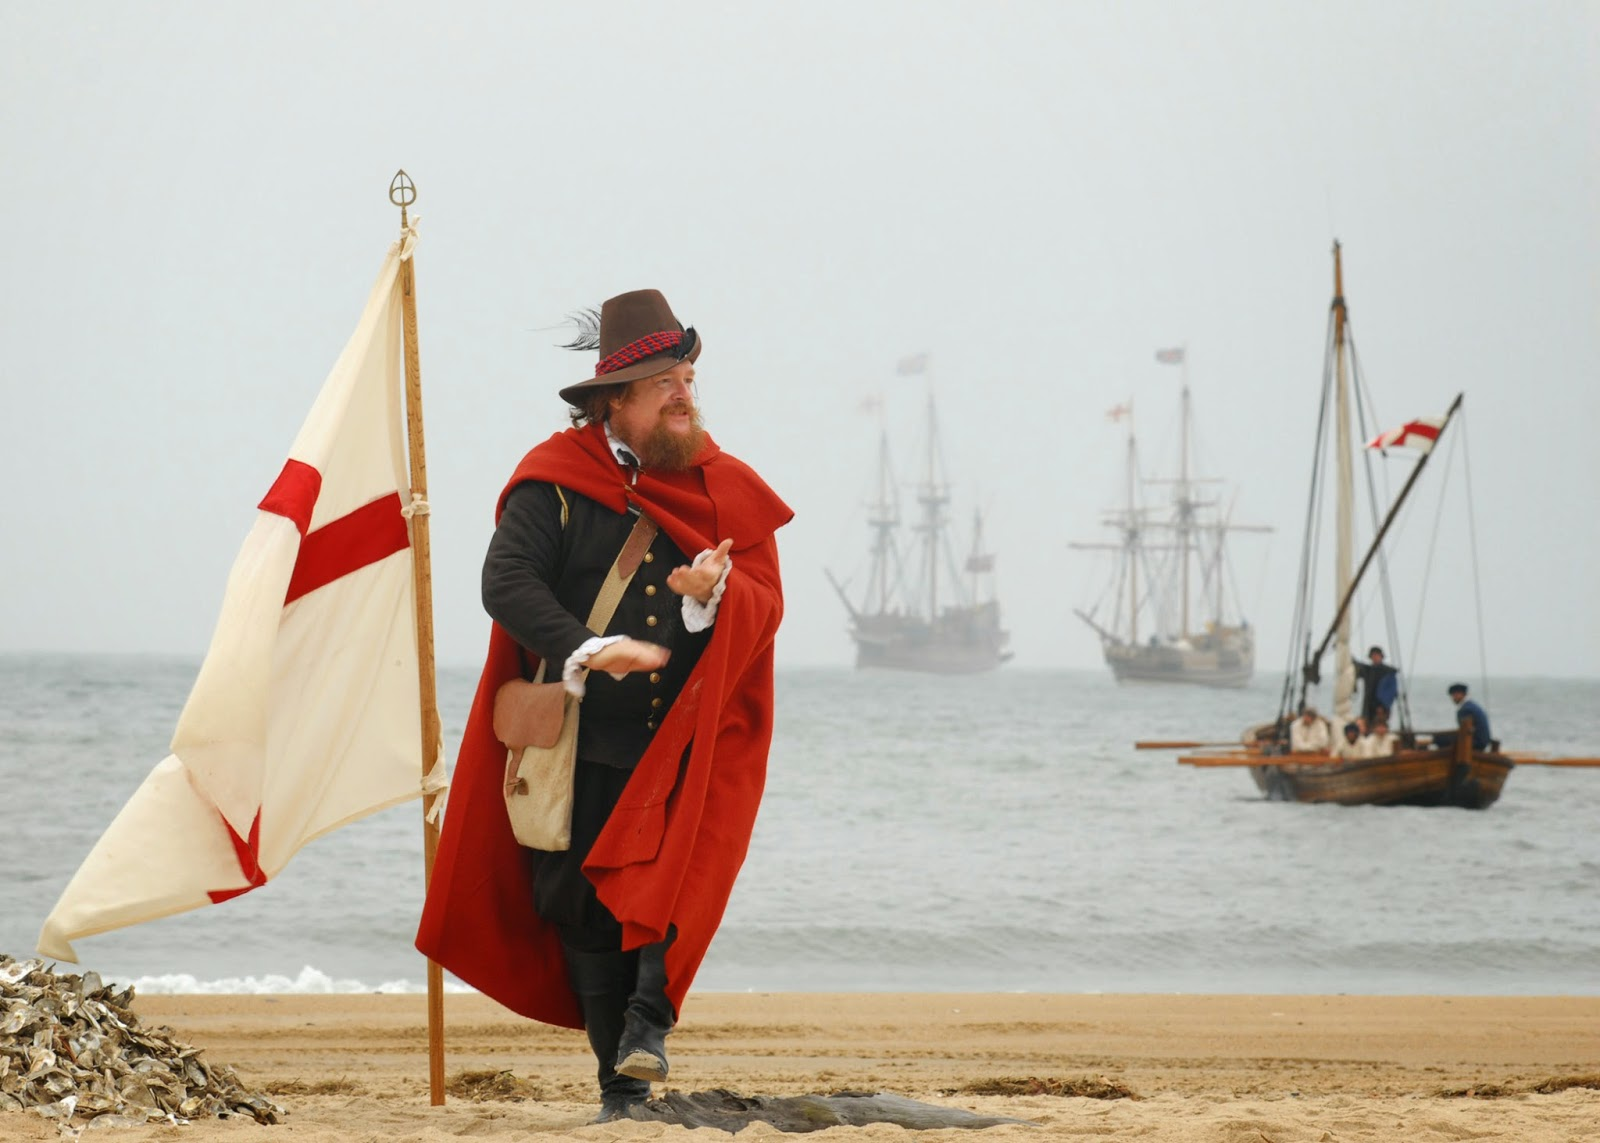 http://en.wikipedia.org/wiki/History_of_Jamestown,_Virginia_%281607%E2%80%9399%29